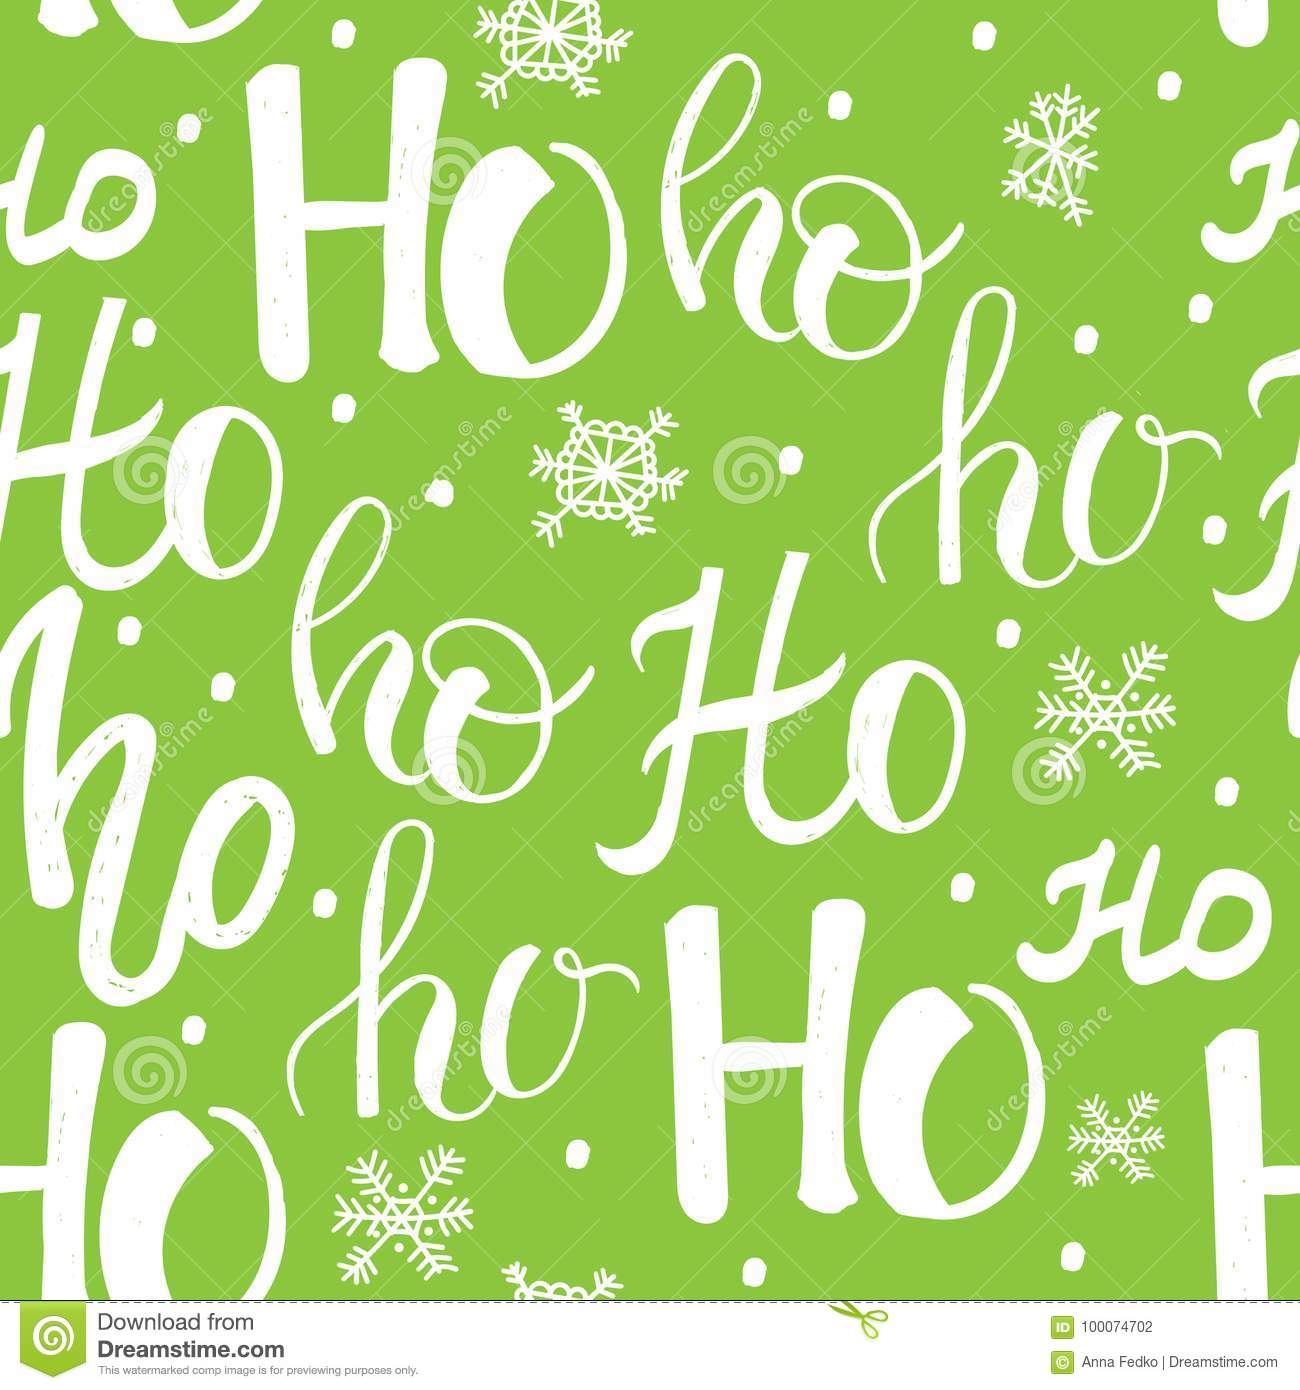 Hohoho pattern, Santa Claus laugh. Seamless texture for Christmas design. Vector green background with handwritten words